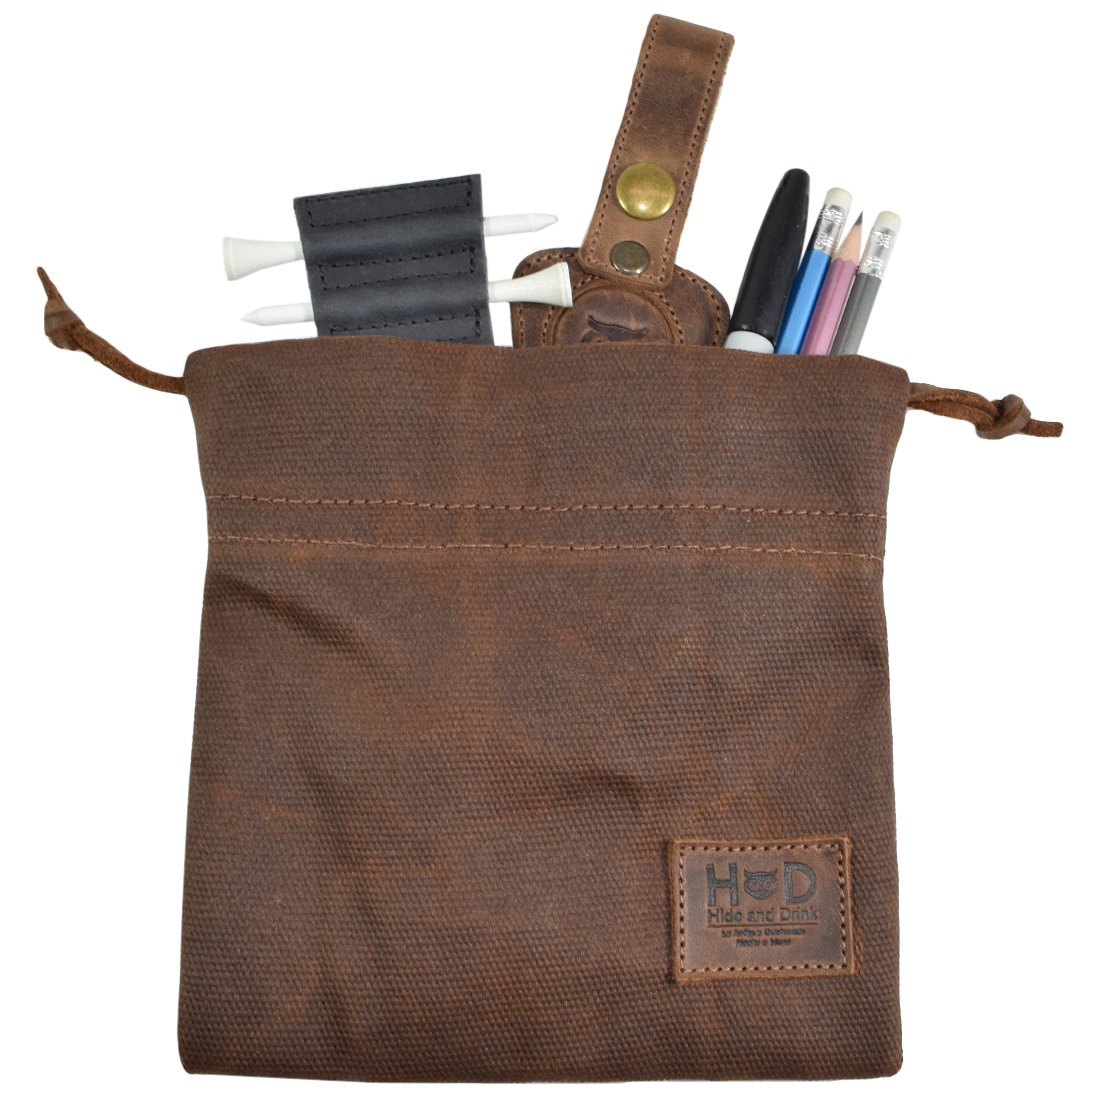 Hide & Drink Waxed Canvas Golf Valuables Field/Travel/Tech/Board Game Dice Pouch Handmade by Honey Bourbon